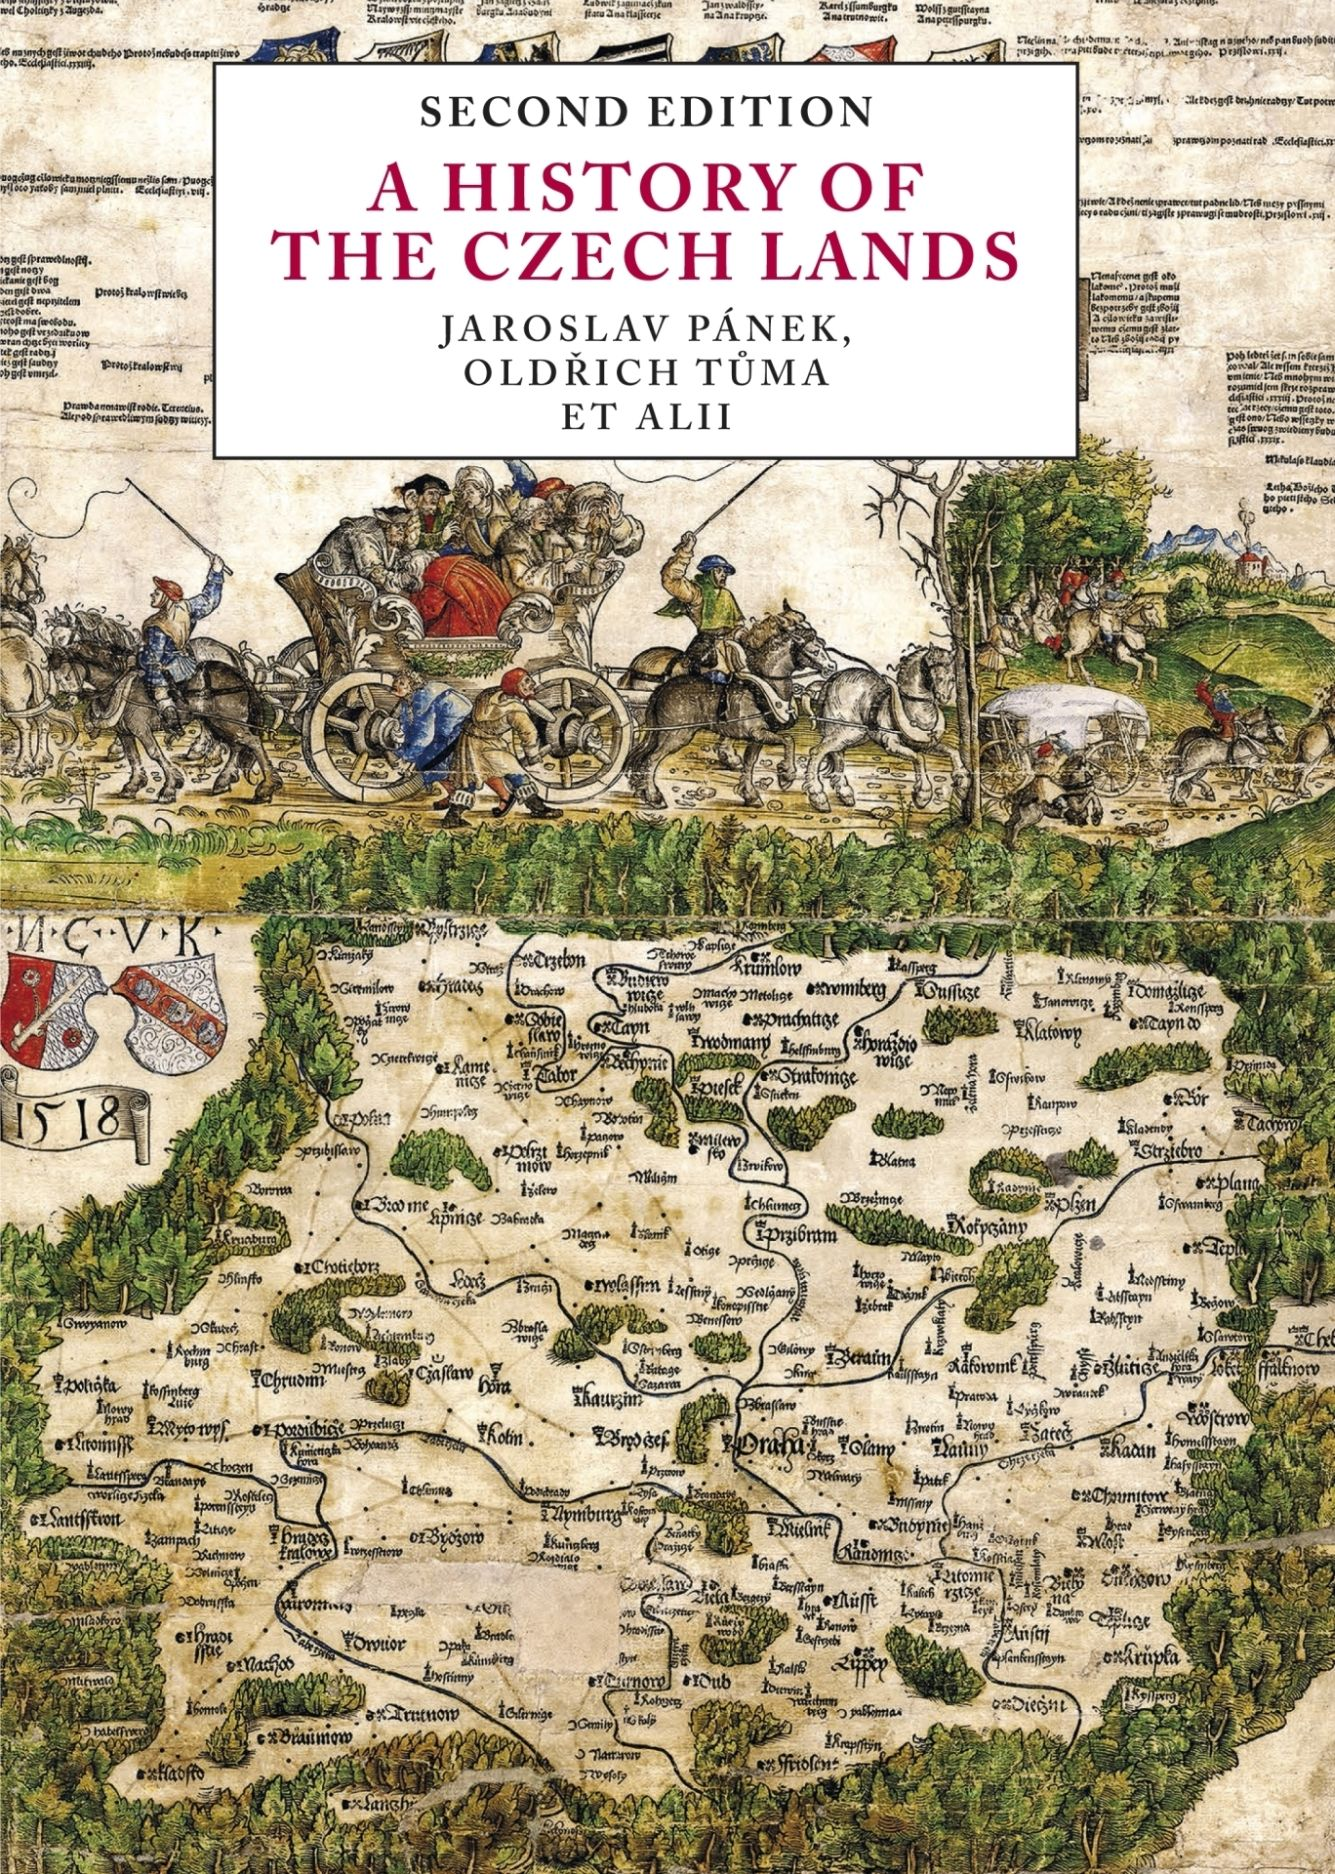 A History of the Czech Lands: Second Edition